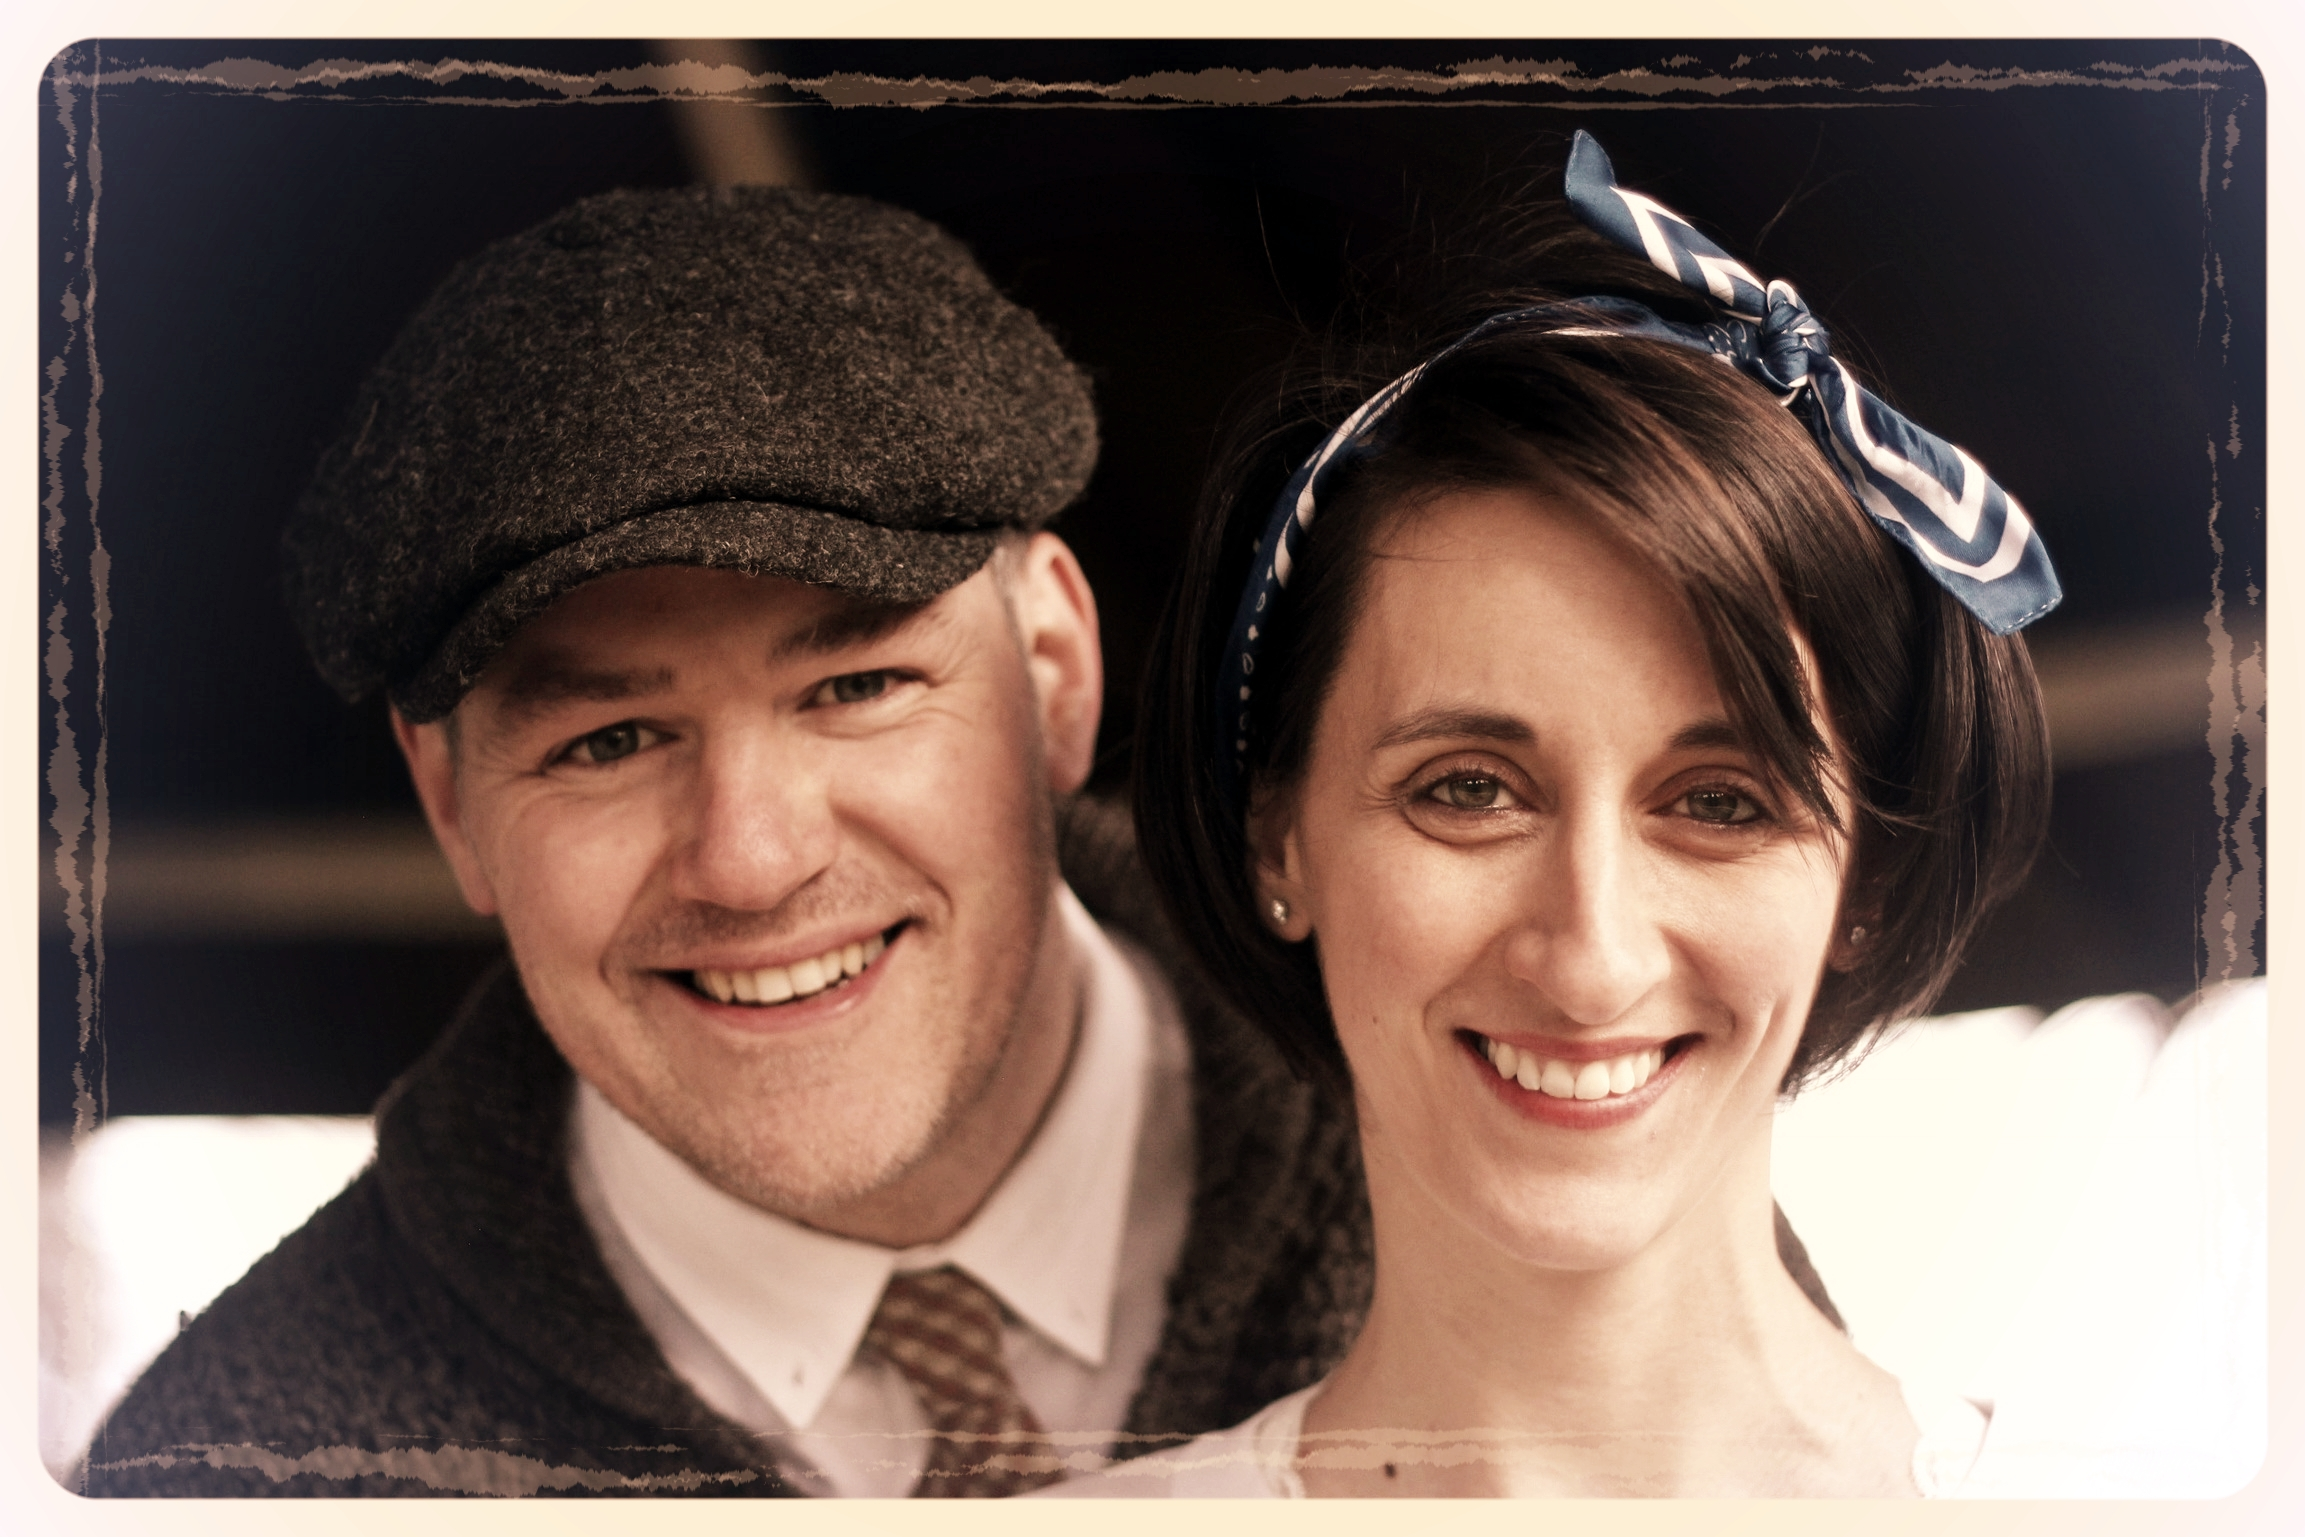 Shaun & Laure-Astrid Barker - LINDY HOP & SWING JIVE - DURSLEYGraduates of the Just Jive school, Shaun has been dancing for many years and has experience in many different styles, although he has truly fallen in love with the Swing family of dances (Jive, Lindy Hop & Collegiate Shag). Shaun says